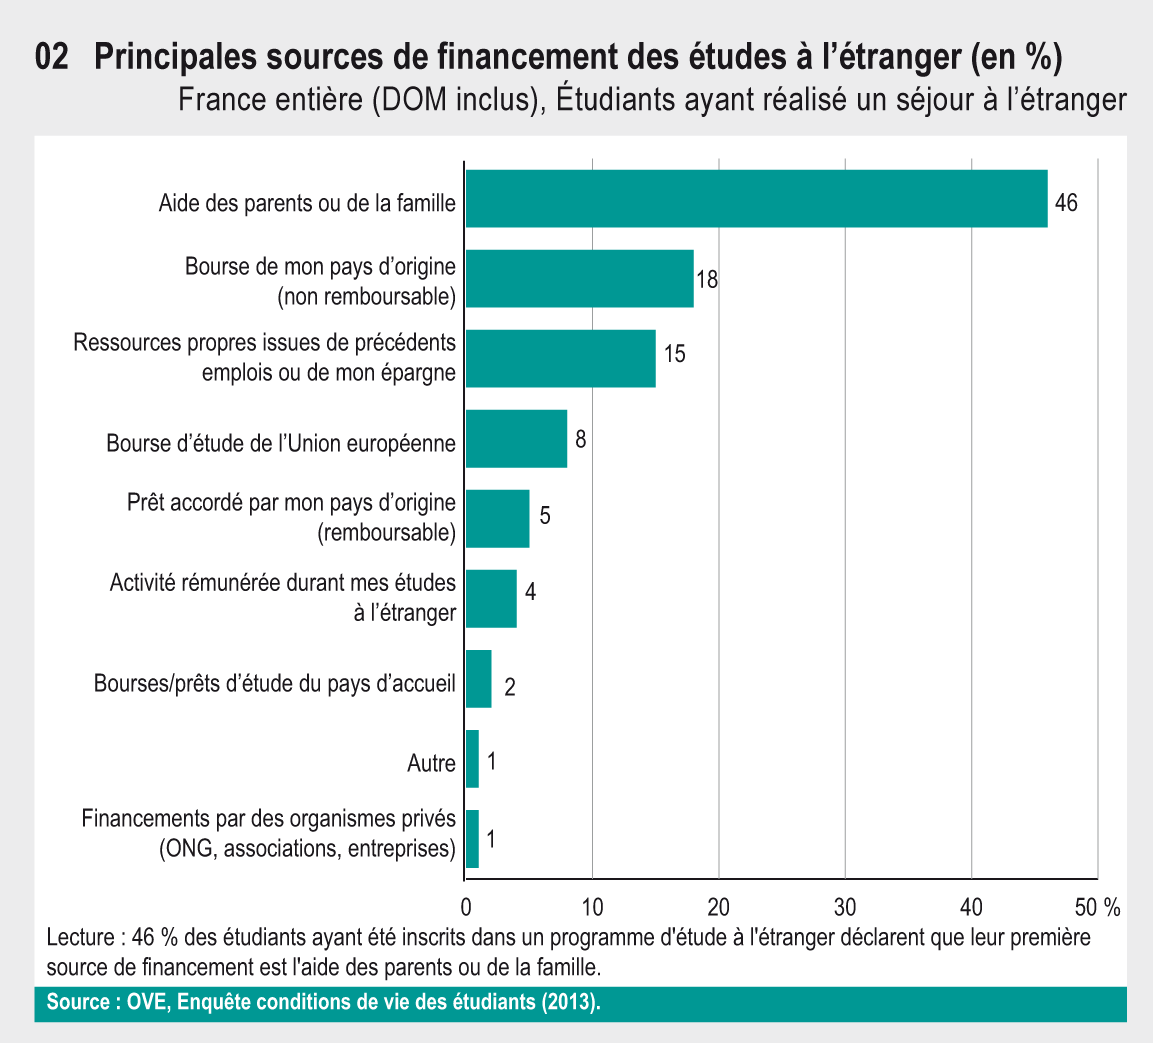 bourse etudiant parents a l'etranger